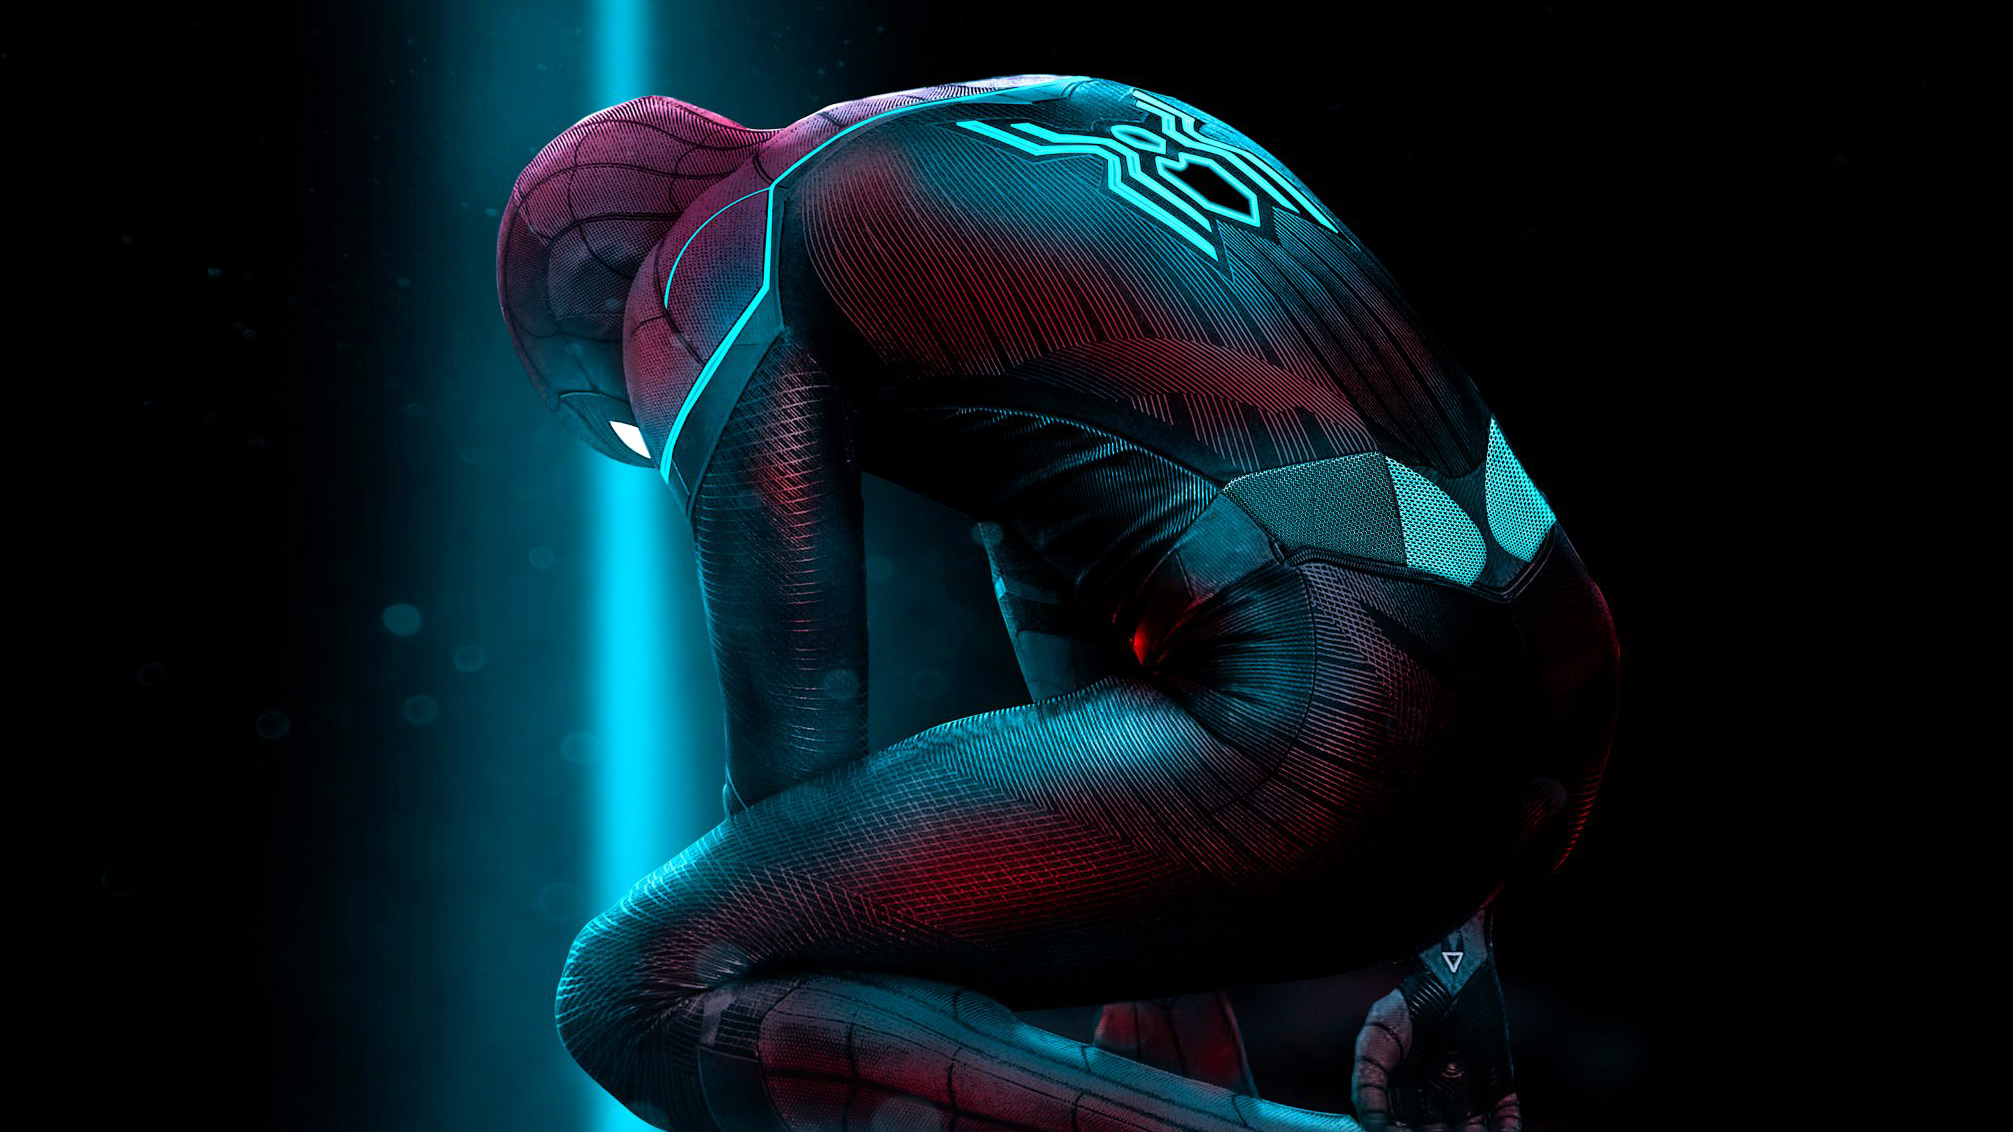 1280x2120 Spiderman Far From Home Art Iphone 6 Hd 4k Wallpapers